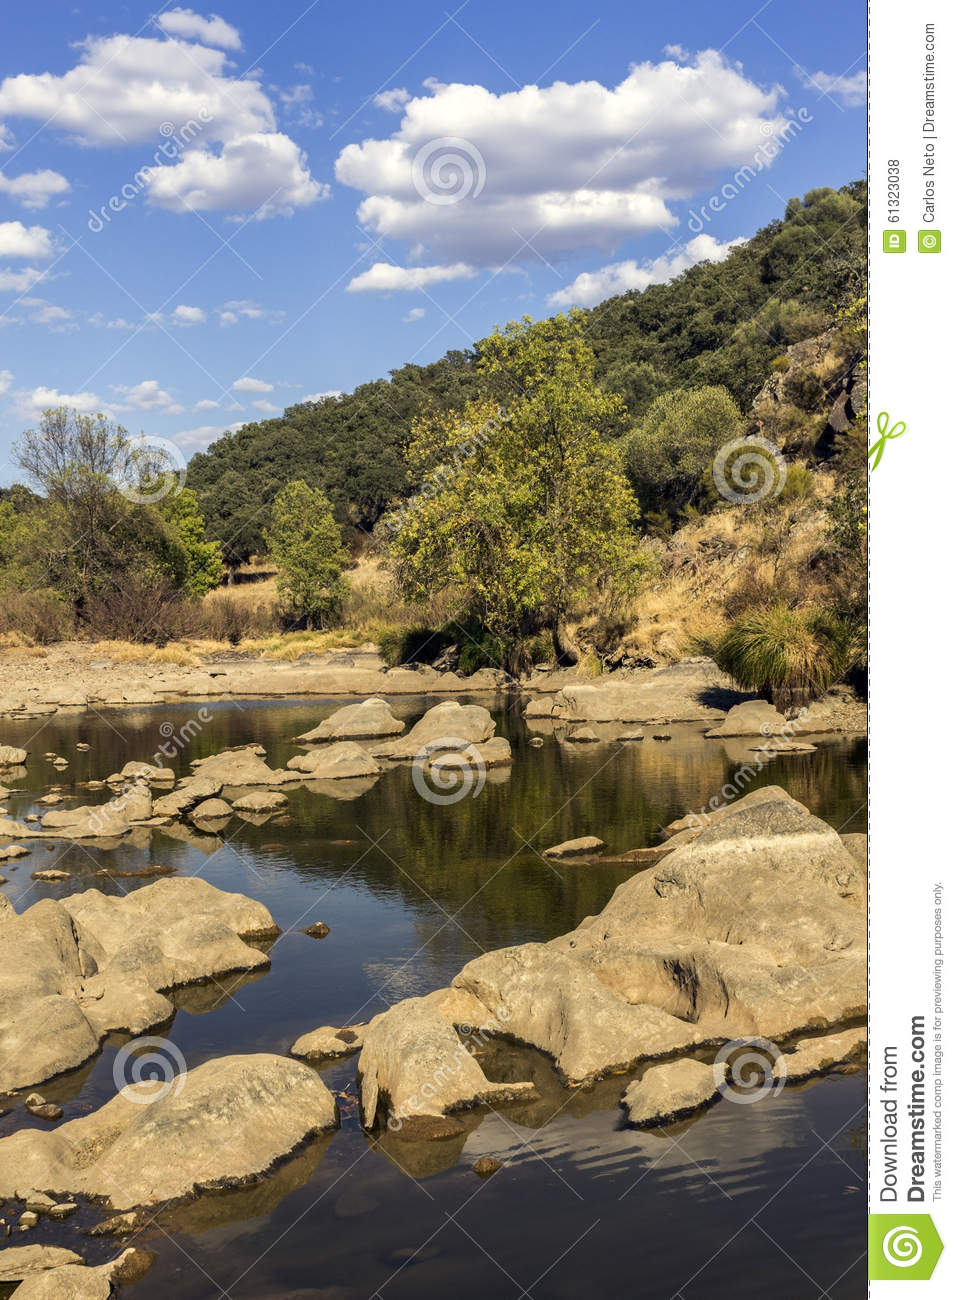 Countryside Landscape Scenic View Of A Fresh Water Stream Stock Photo - Image...